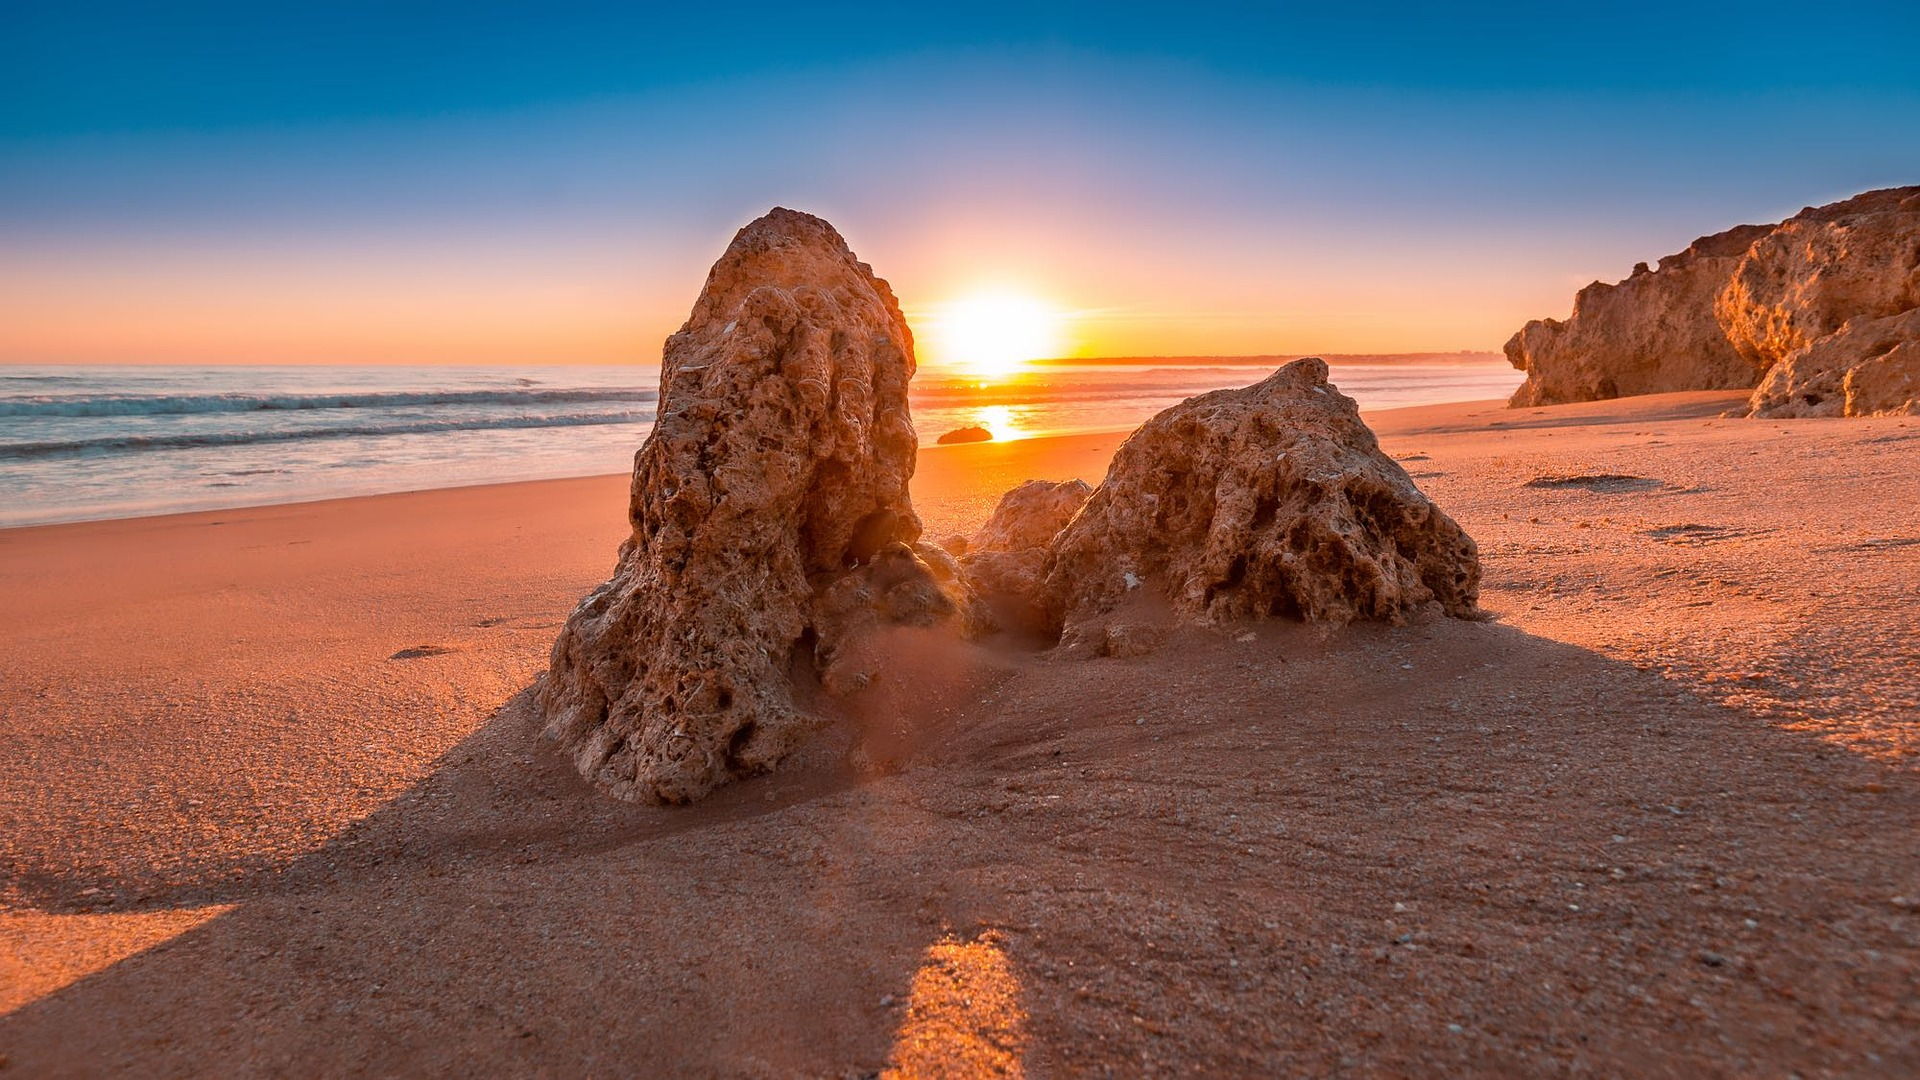 Algarve winter sunset with sun setting between two rocks on the beach